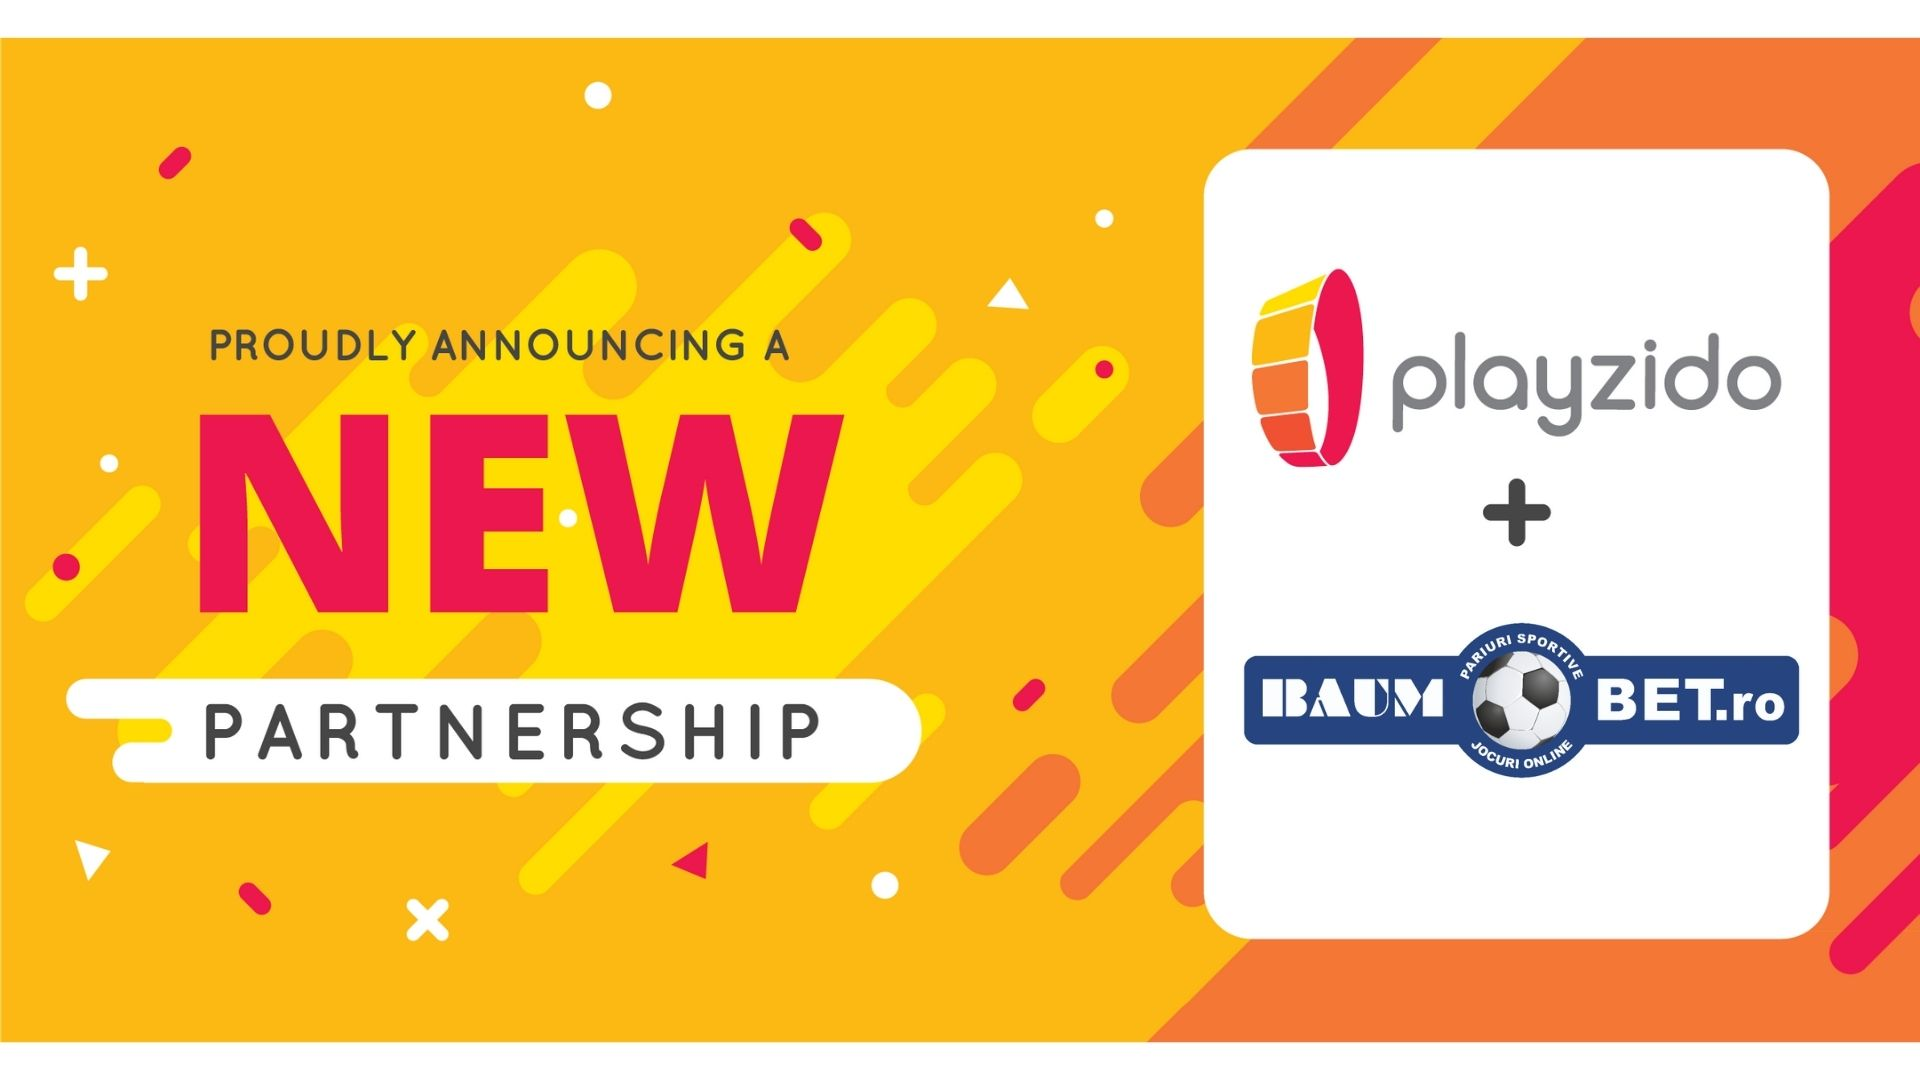 Playzido further expands into Romania with Leading Operator Baumbet.